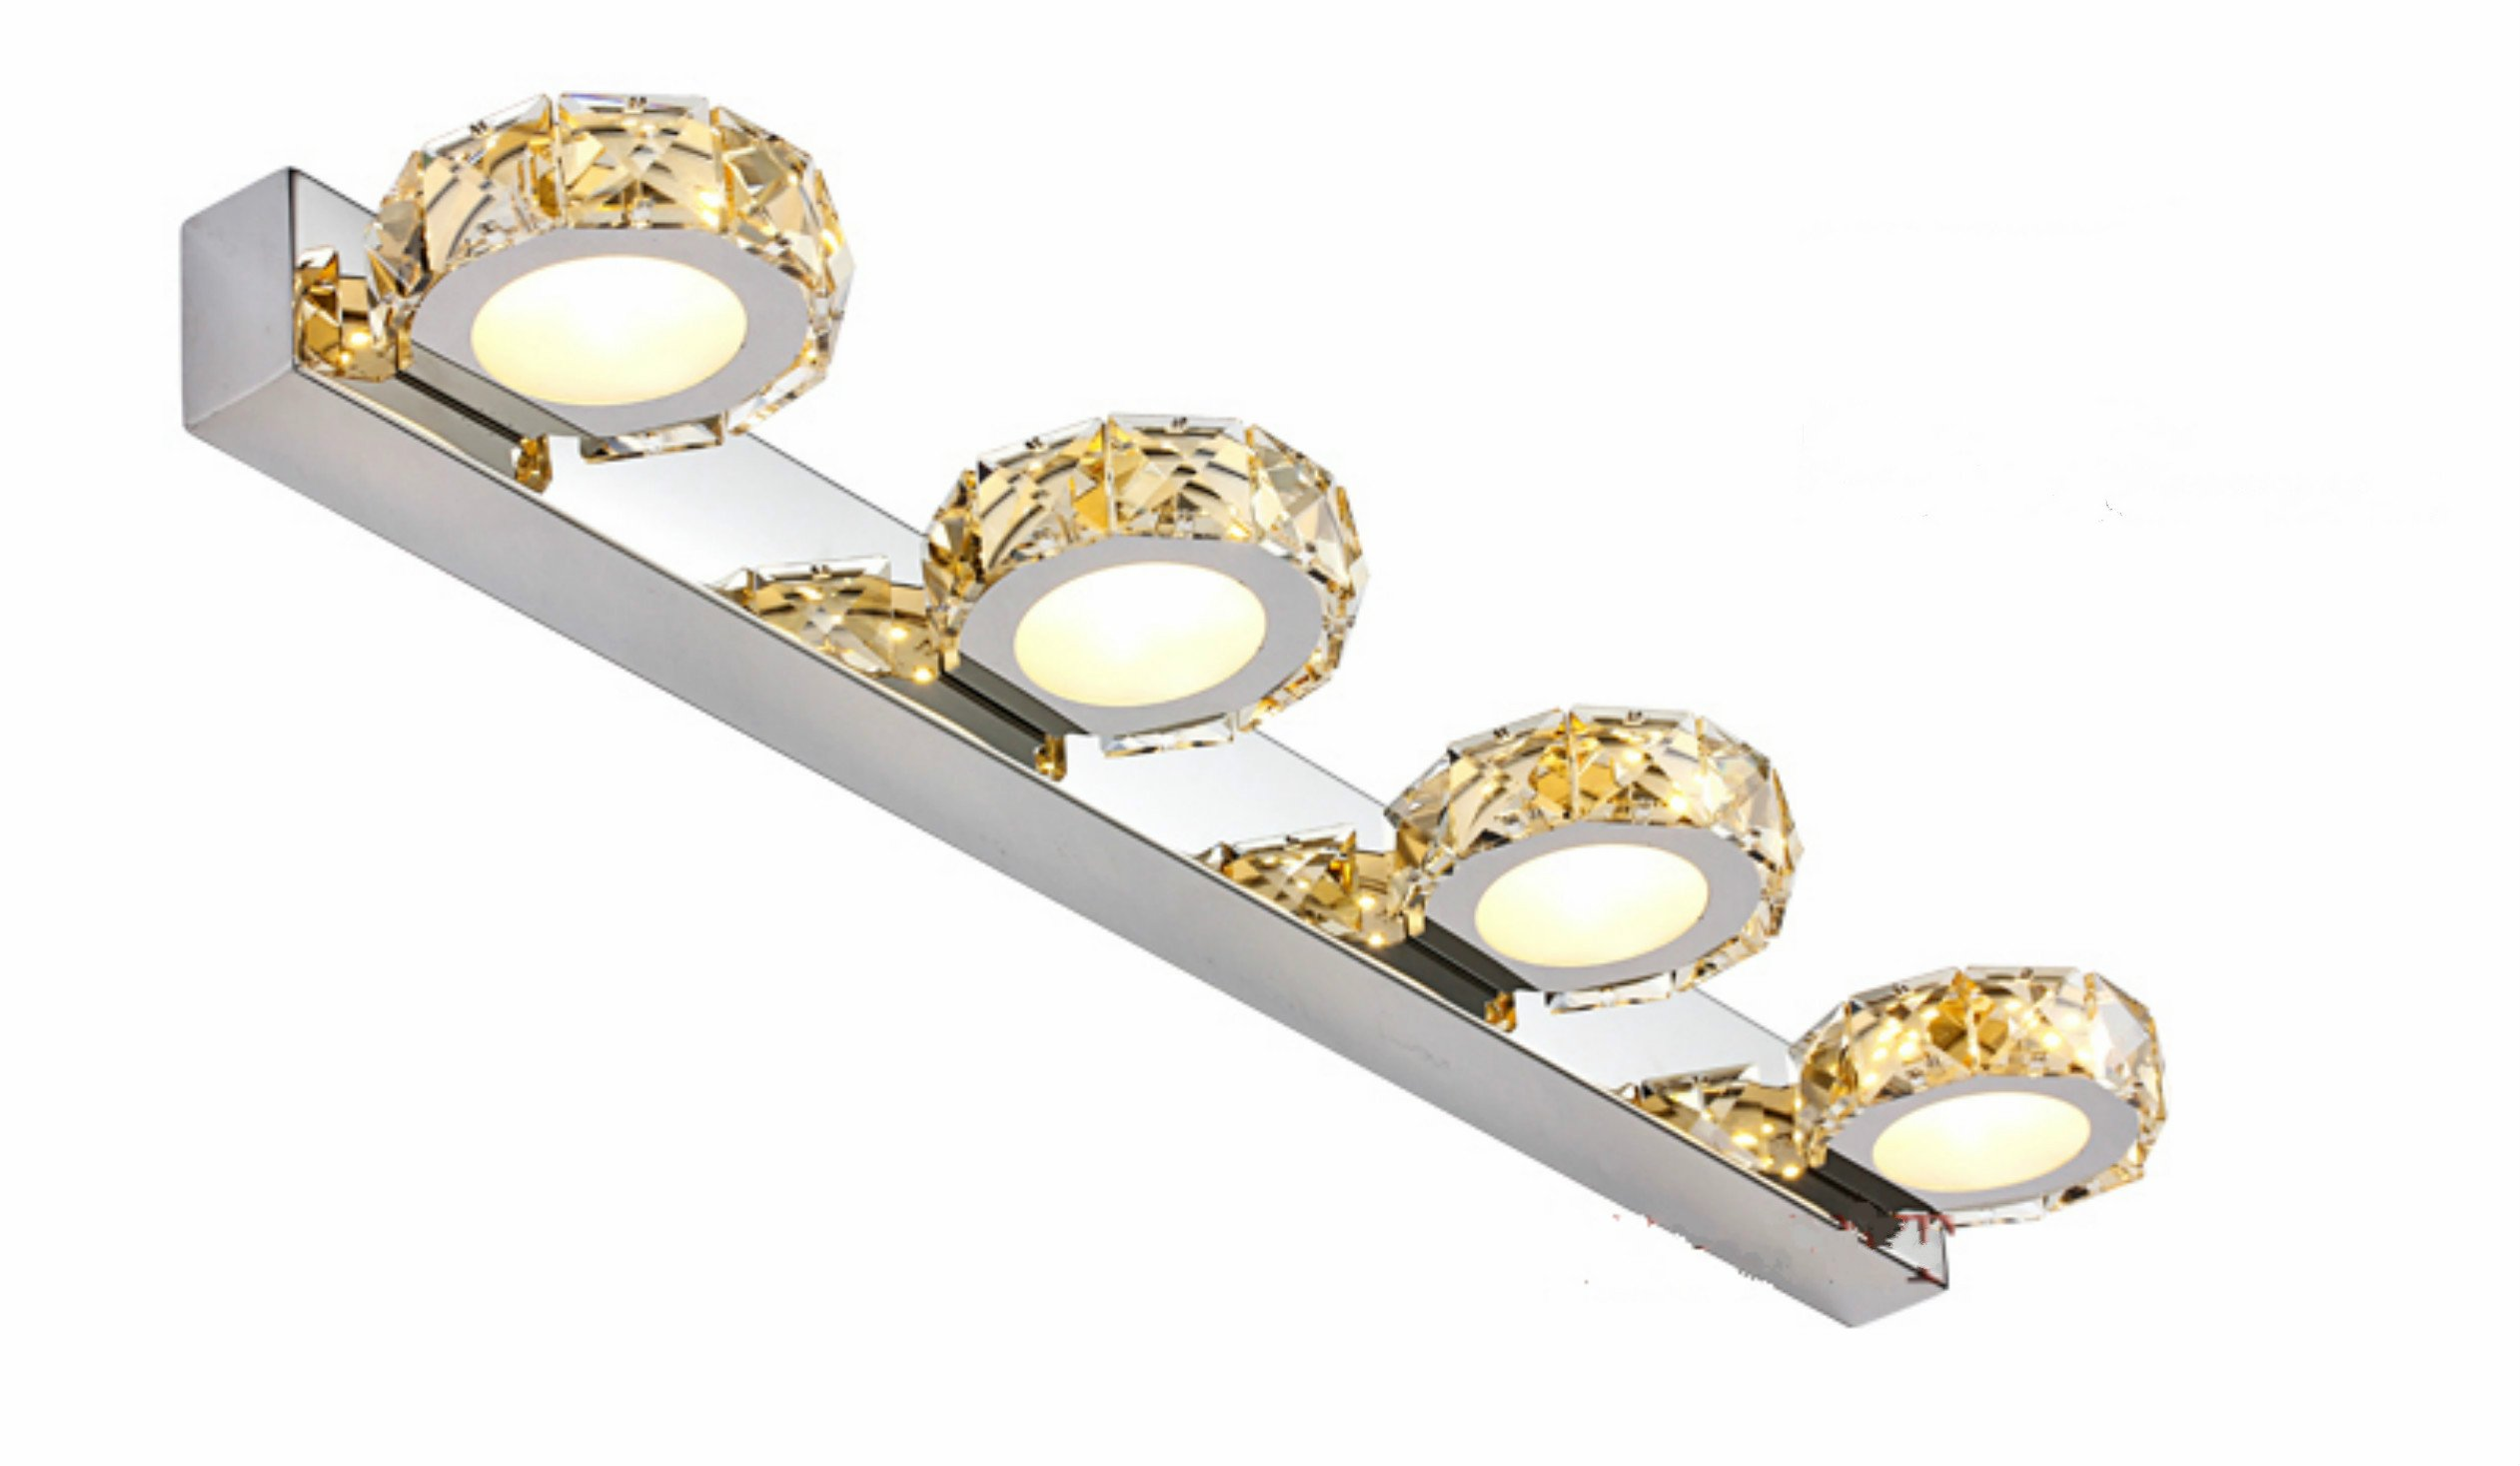 Lightess Vanity Lights 4-Light LED Bathroom Light Fixtures Crystal 1200 Lumen 12W, Gold